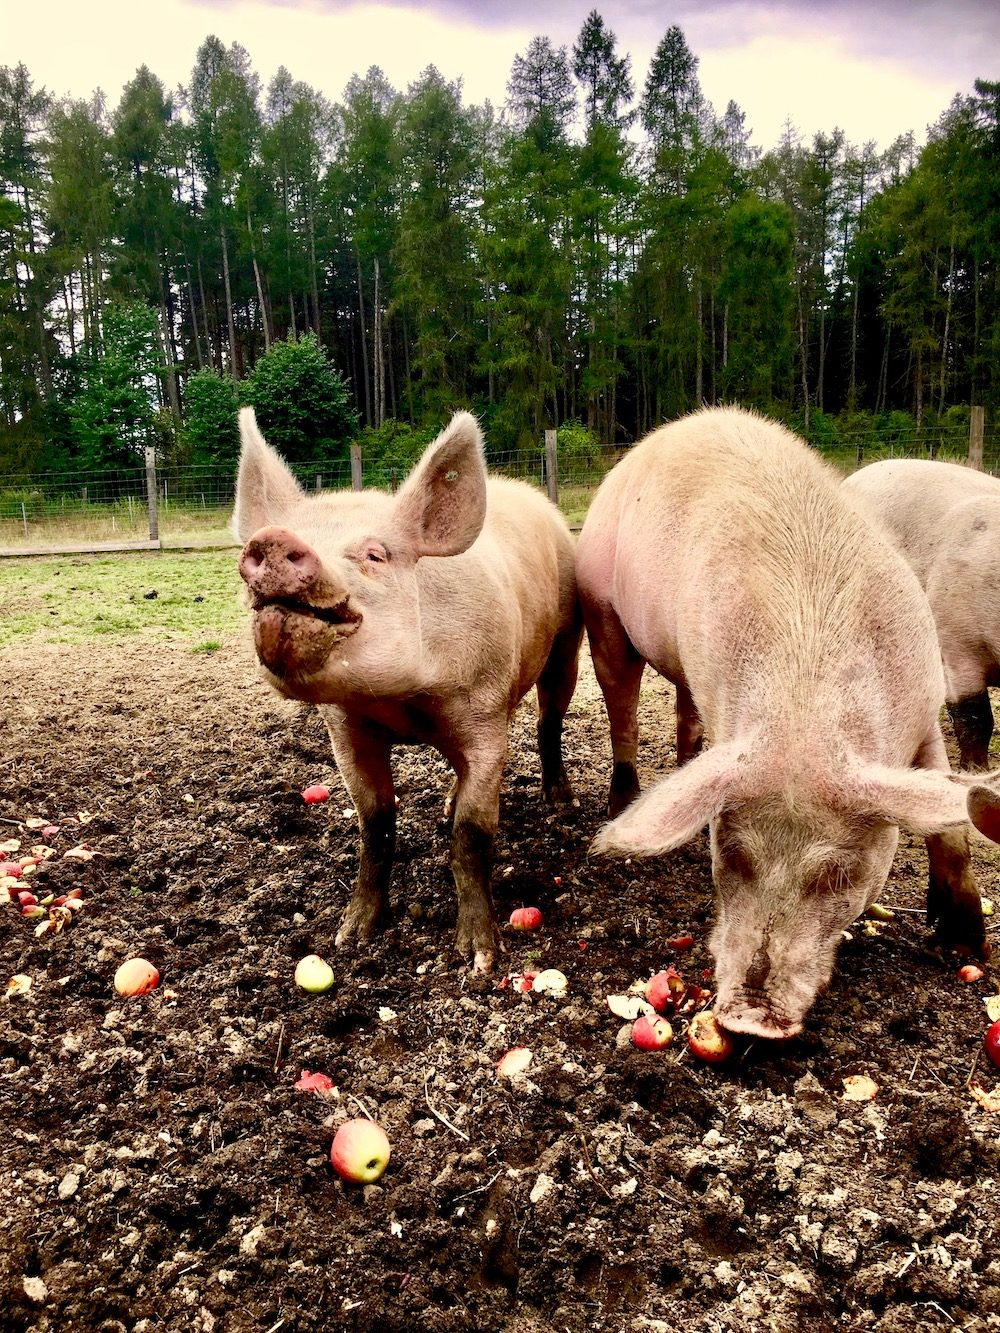 Pigs munching on apples in a meadow next to a forest.